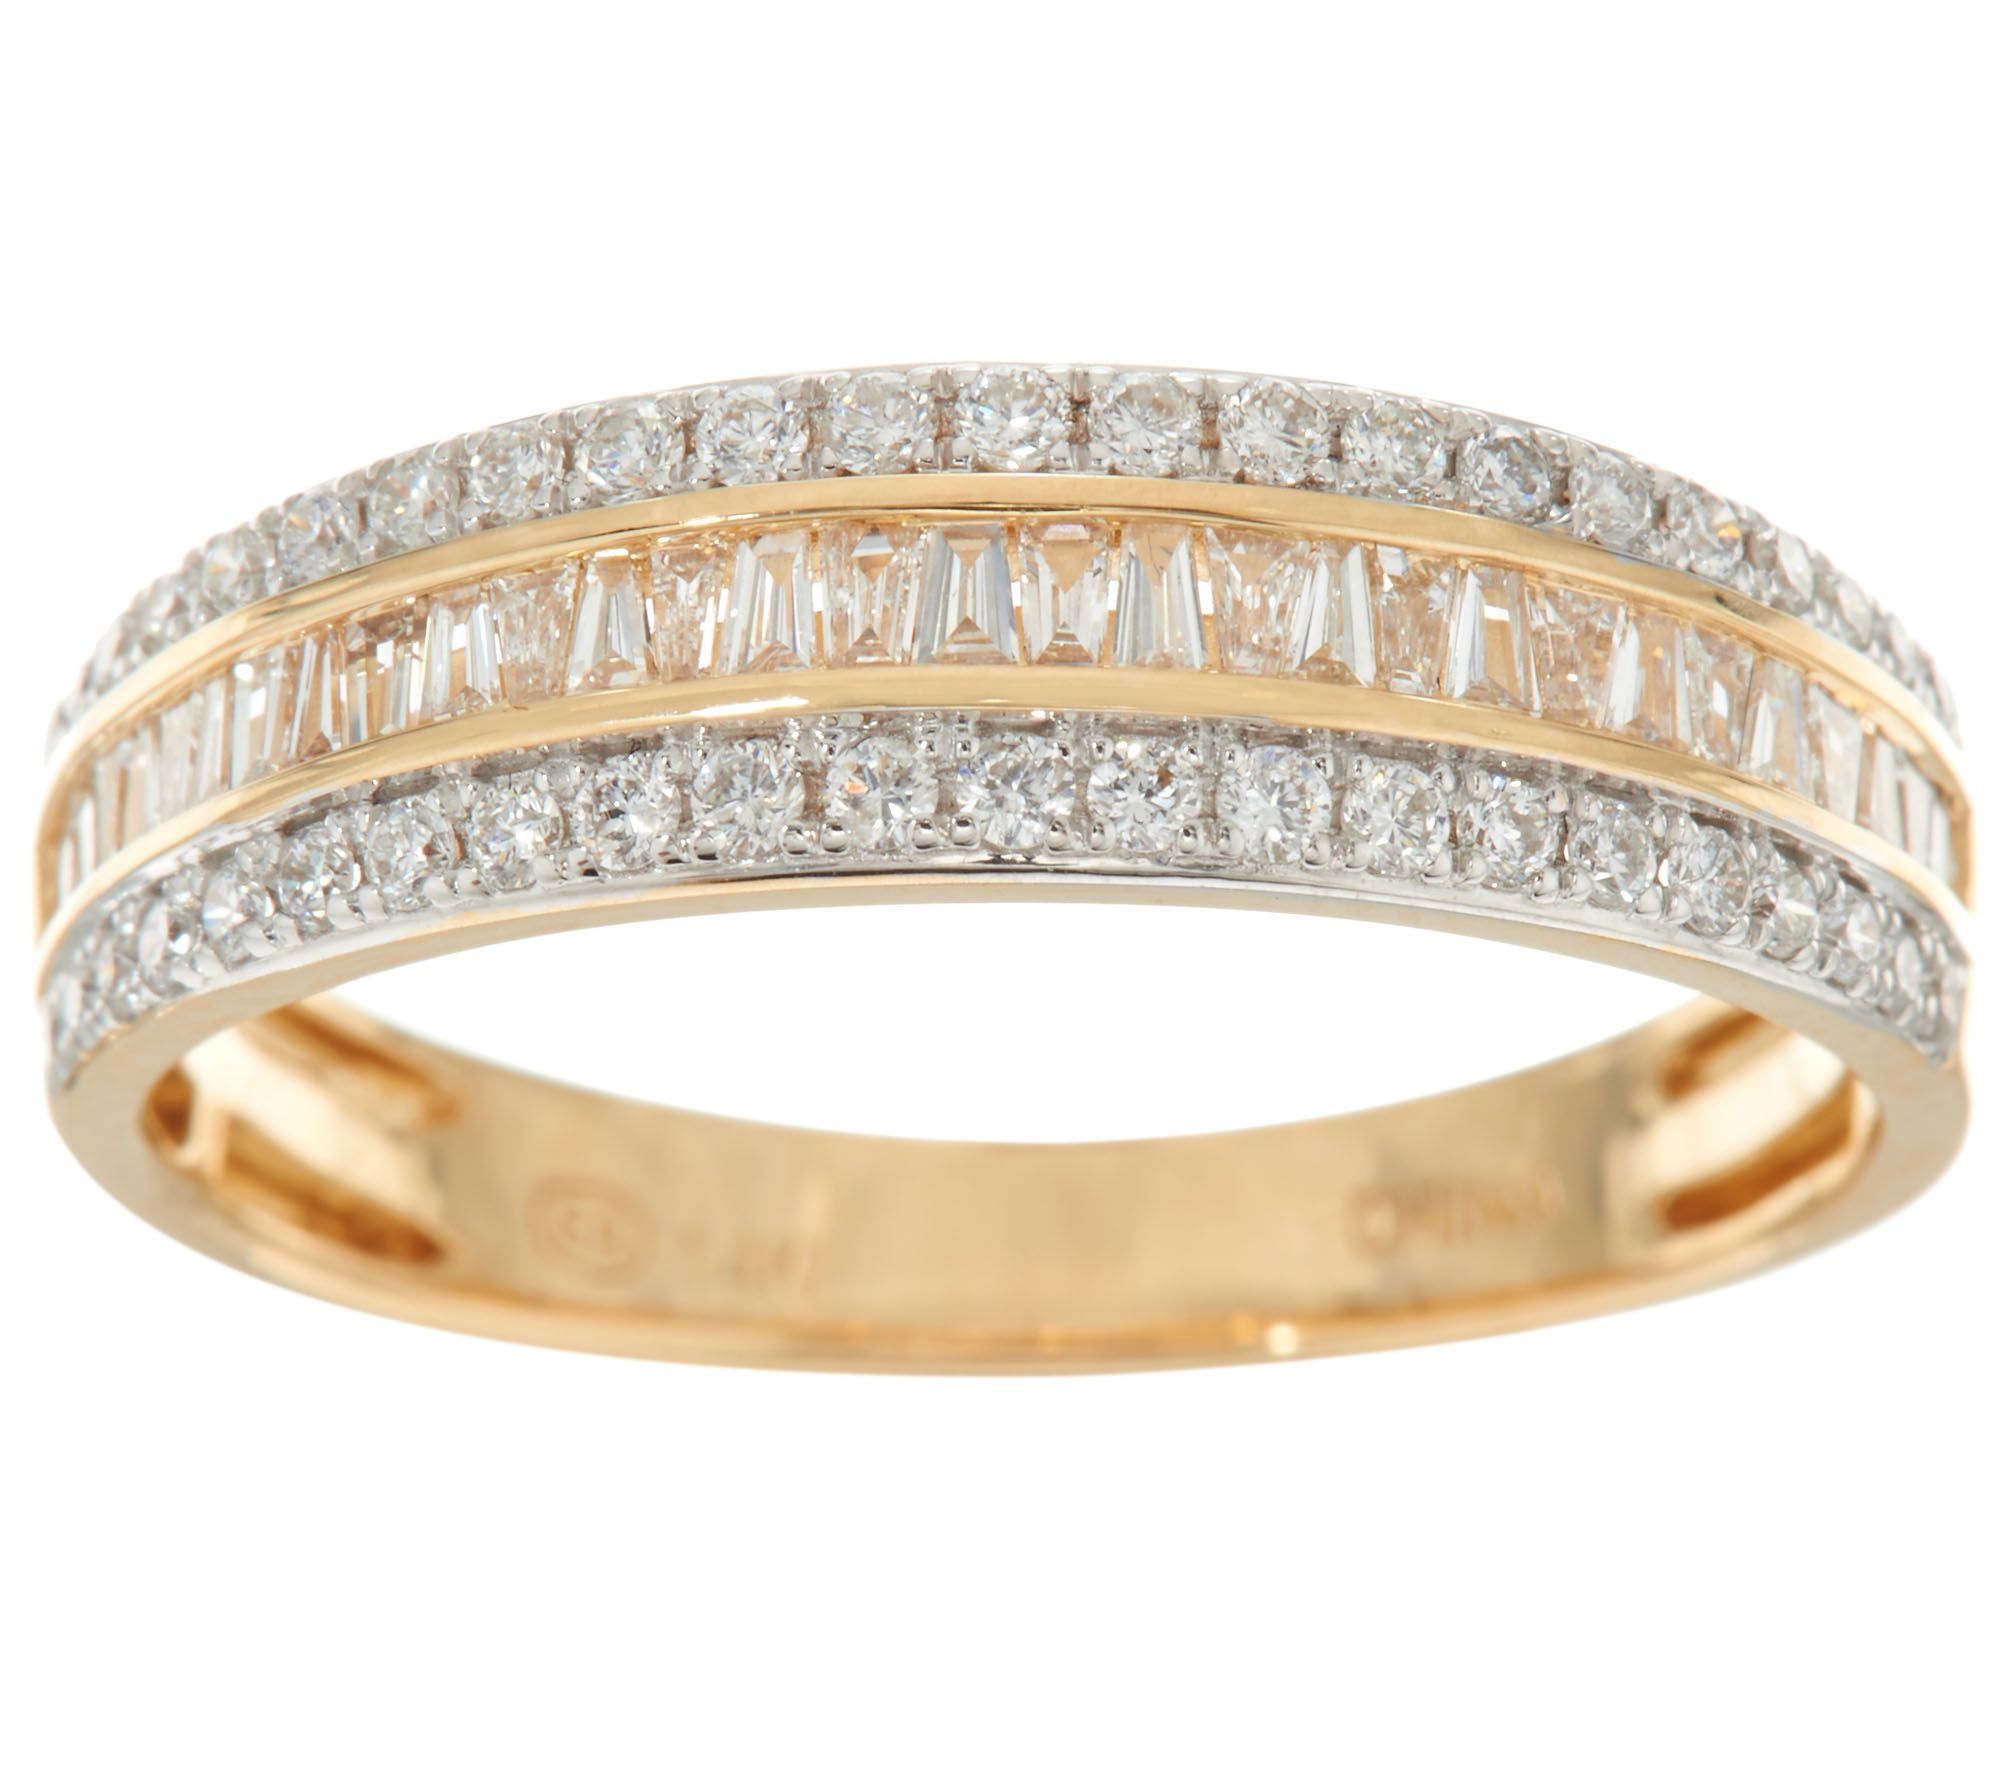 gold white baguette band cut a eternity and blaze anniversary bands year diamond shop ring